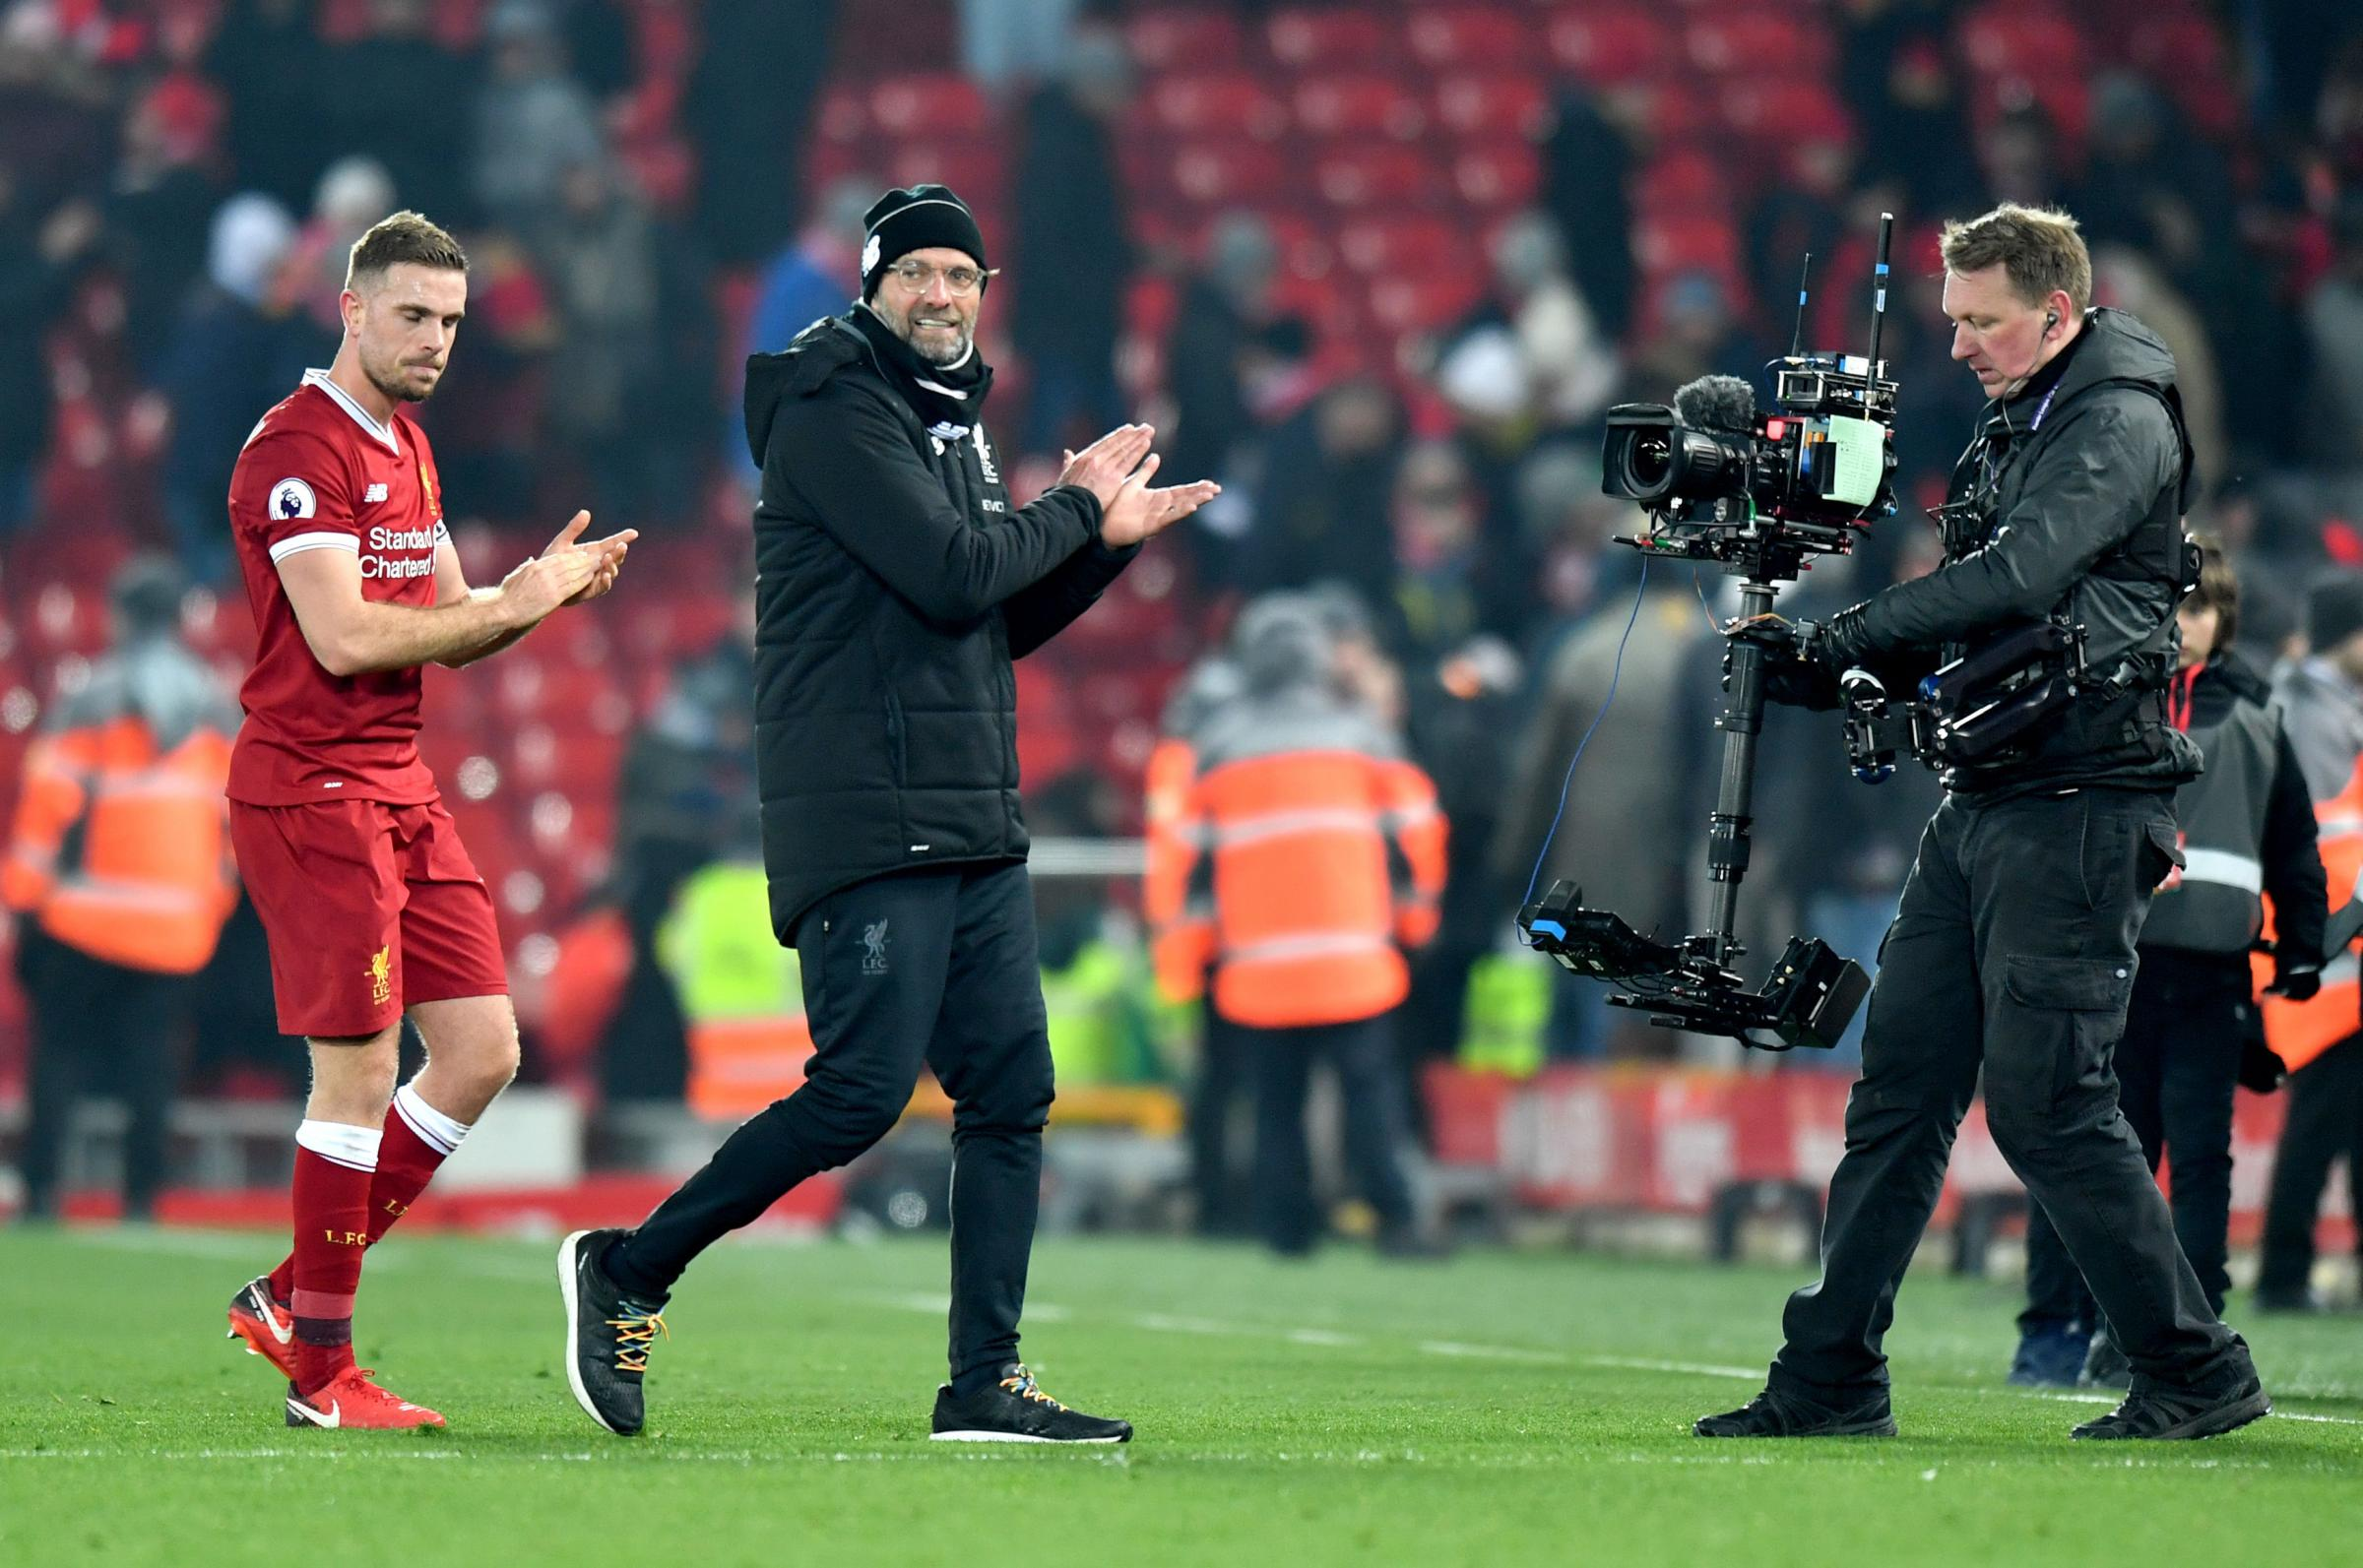 TOP MARKS: Liverpool manager Jurgen Klopp walks off after the final whistle with man of the match Jordan Henderson